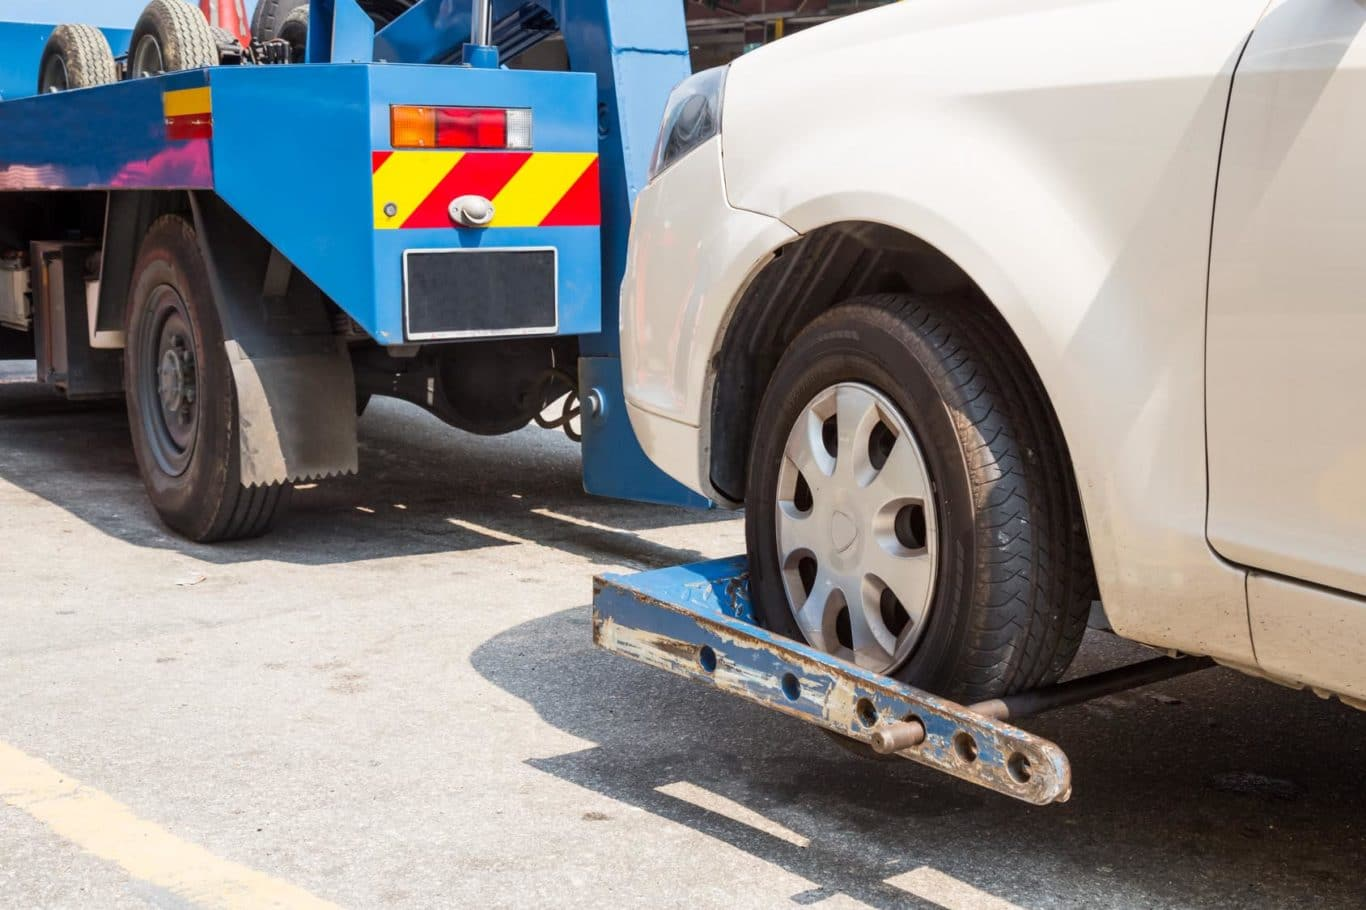 Dublin 8 (D8) expert Towing services